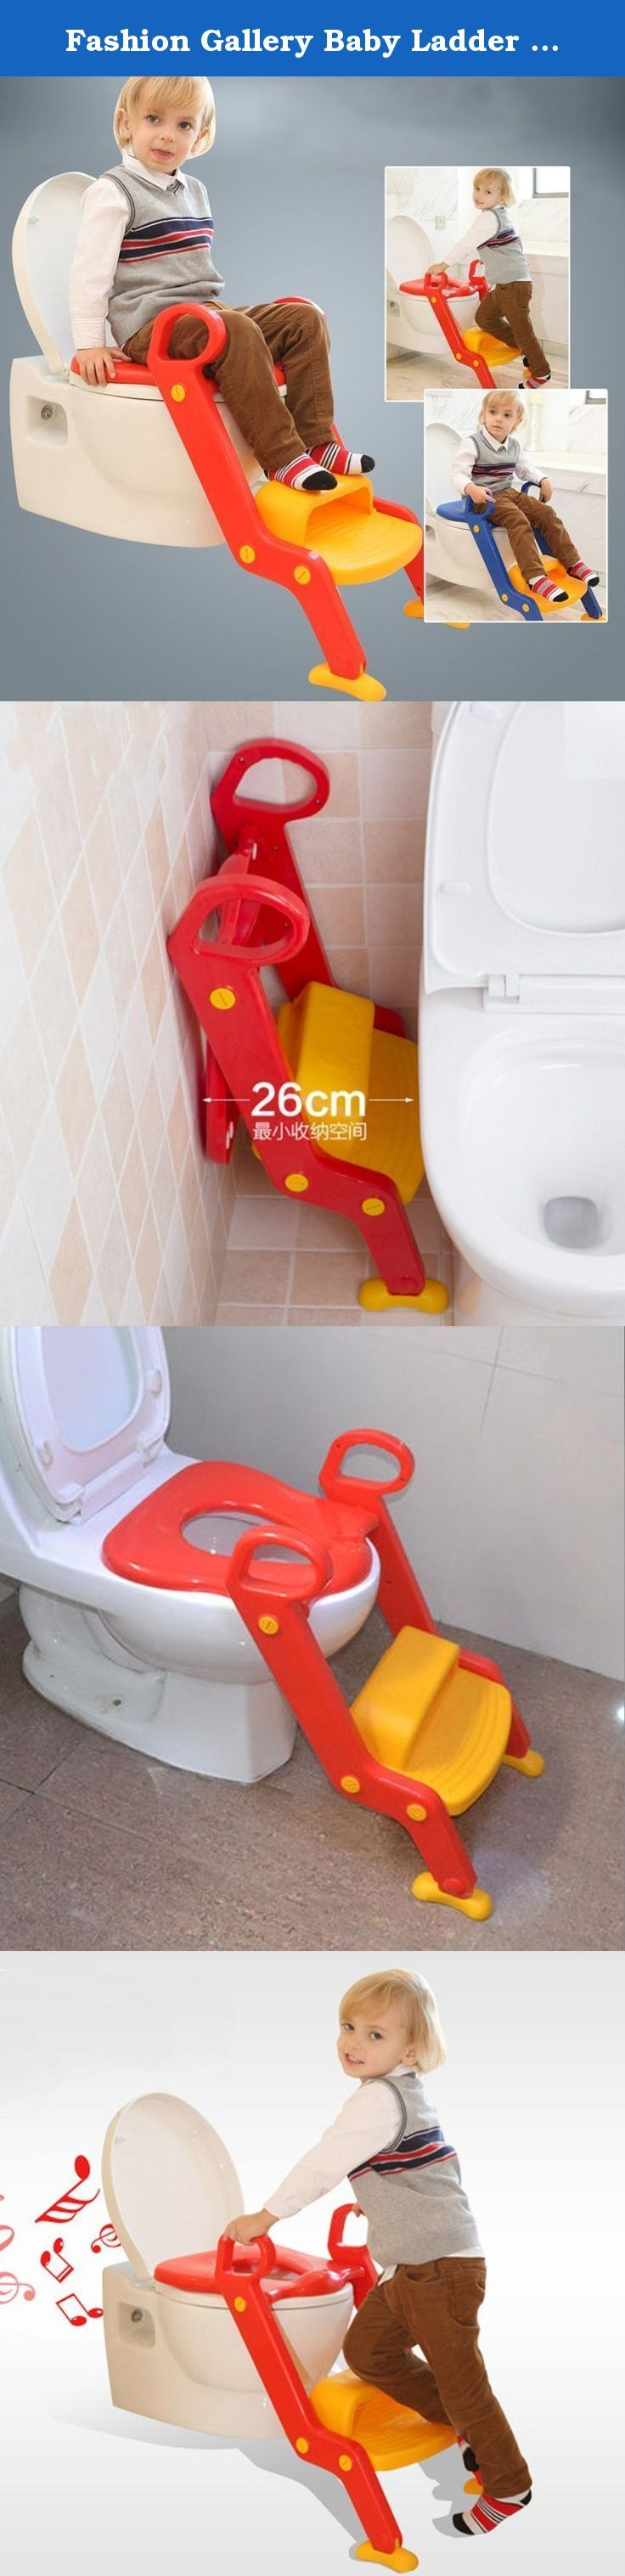 Fashion Gallery Baby Ladder Portable Chair Toilet Adjustable Steps Trainer Potty Seat Step Stool With Anti-Skid Feet (Red). Product include1 x Babu2026 & Fashion Gallery Baby Ladder Portable Chair Toilet Adjustable Steps ... islam-shia.org